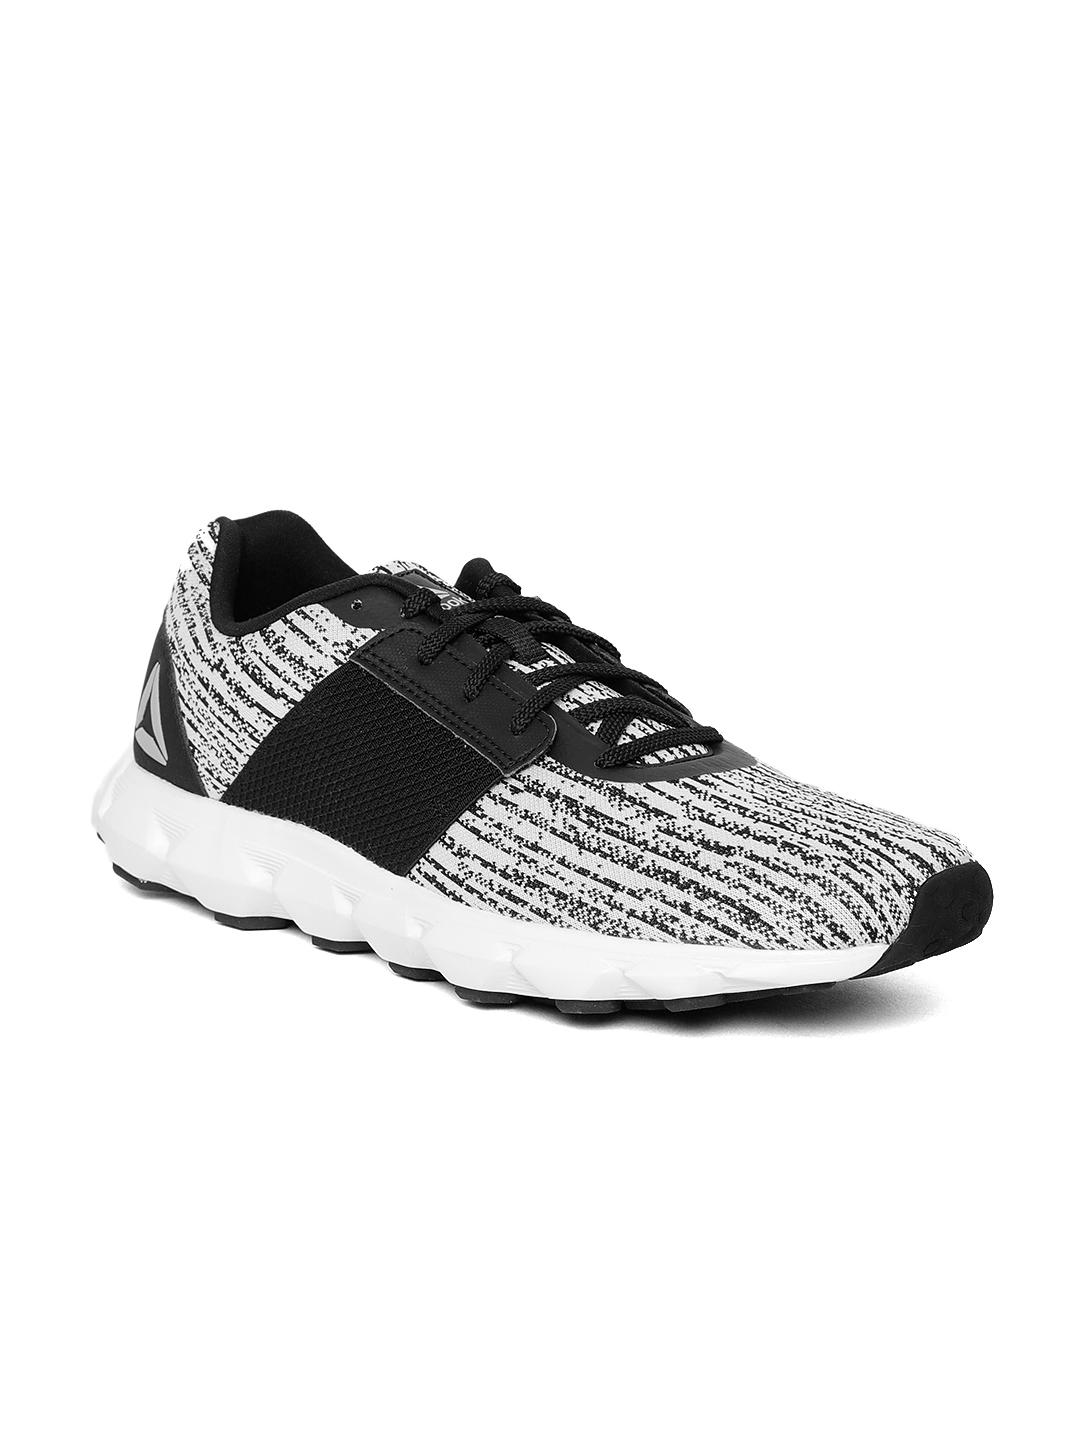 a2973e9c24ffd3 Buy Reebok Men White   Black City Scape LP Running Shoes - Sports ...